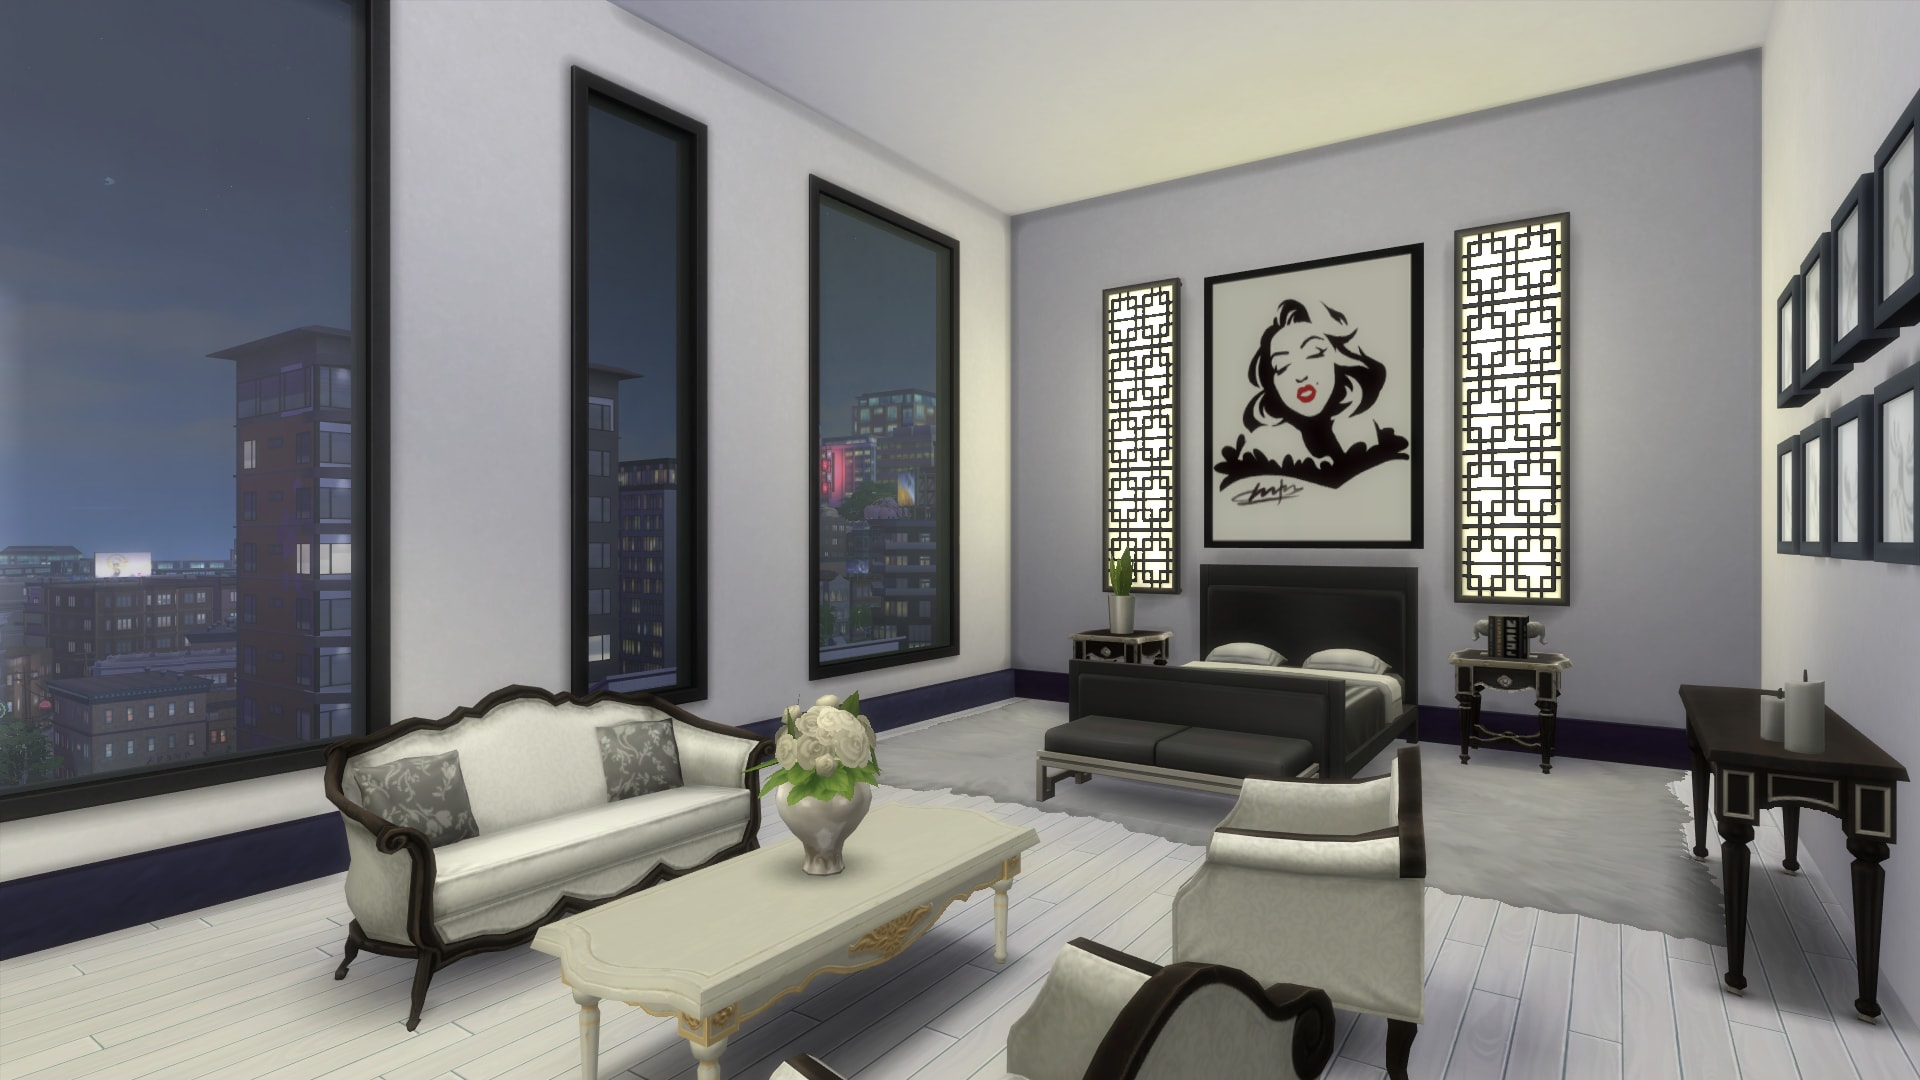 Mod the sims old hollywood glamour penthouse no cc for Sims 3 master bedroom ideas